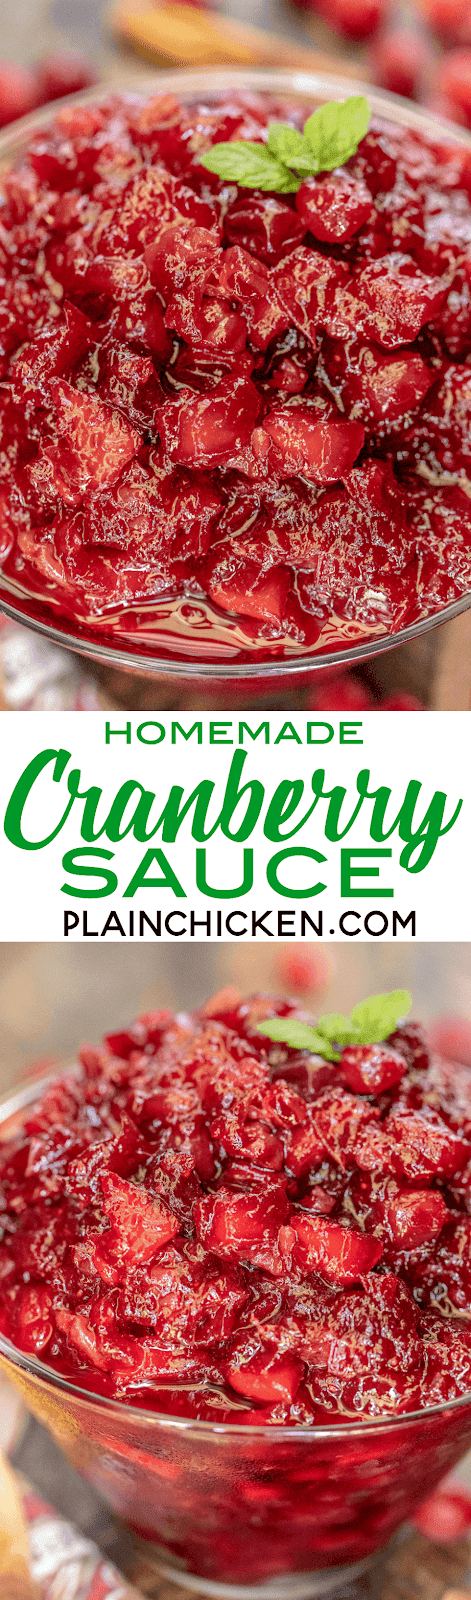 Homemade Cranberry Sauce - a million times better than the canned stuff. Can make ahead and refrigerate until ready to serve. Got the recipe from my childhood neighbor. Cranberries, apples, orange, cinnamon, sugar, pecans, ginger, cloves and orange juice. Hands-down the BEST cranberry sauce I've ever eaten. A MUST for your holiday meal! #cranberrysauce #holidaysidedish